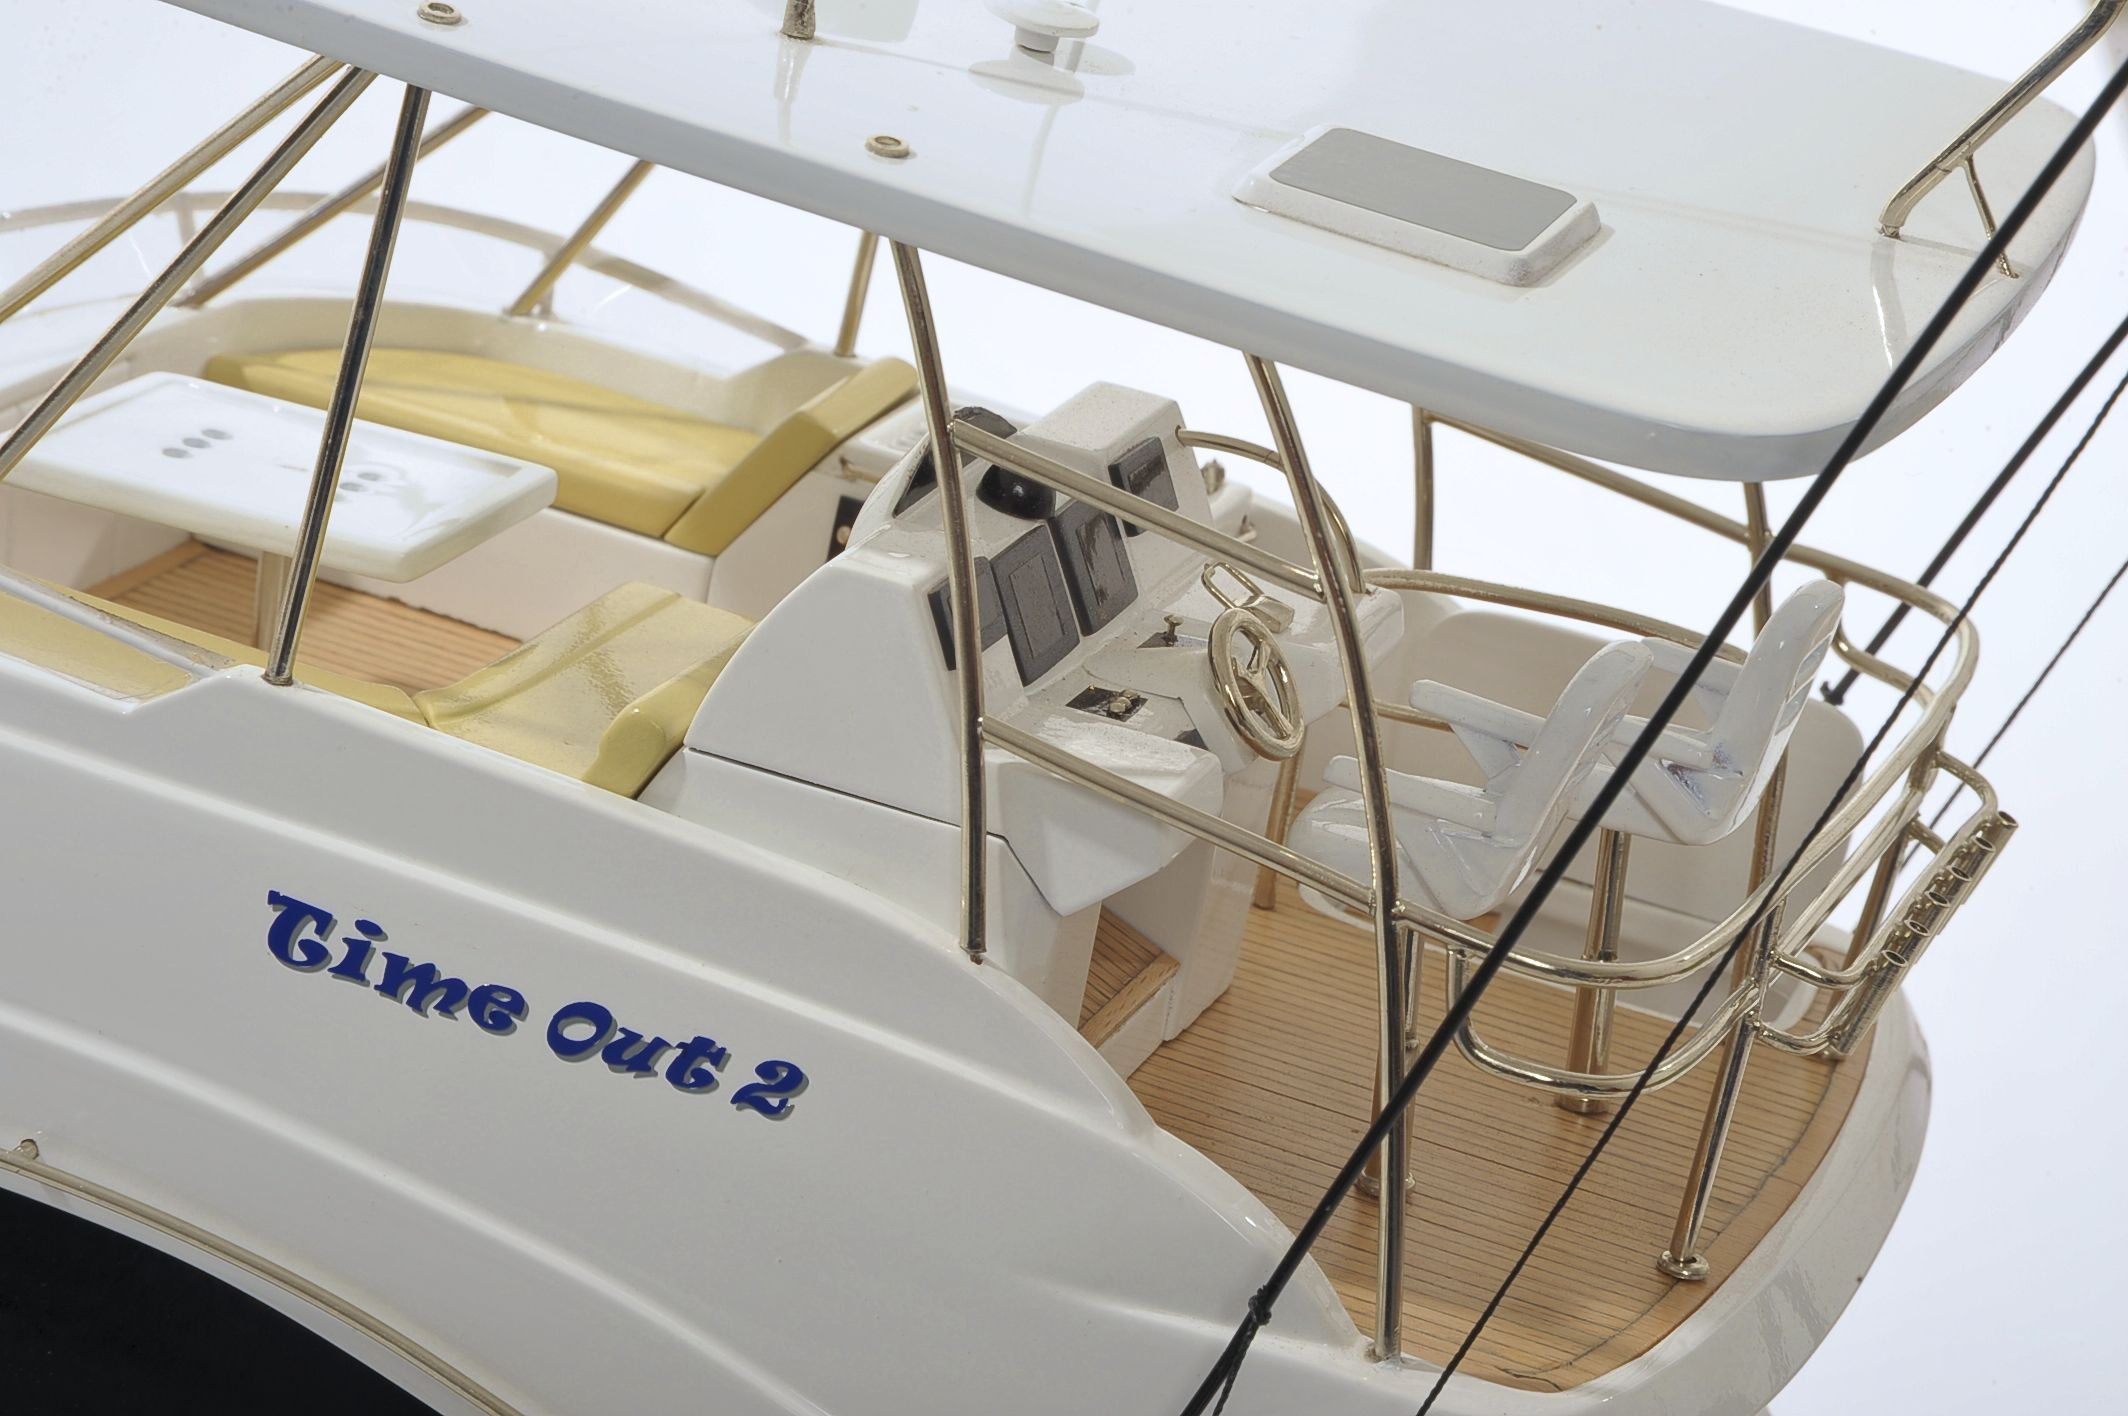 1517-8970-Rivera-45-Model-Boat-Time-Out-2